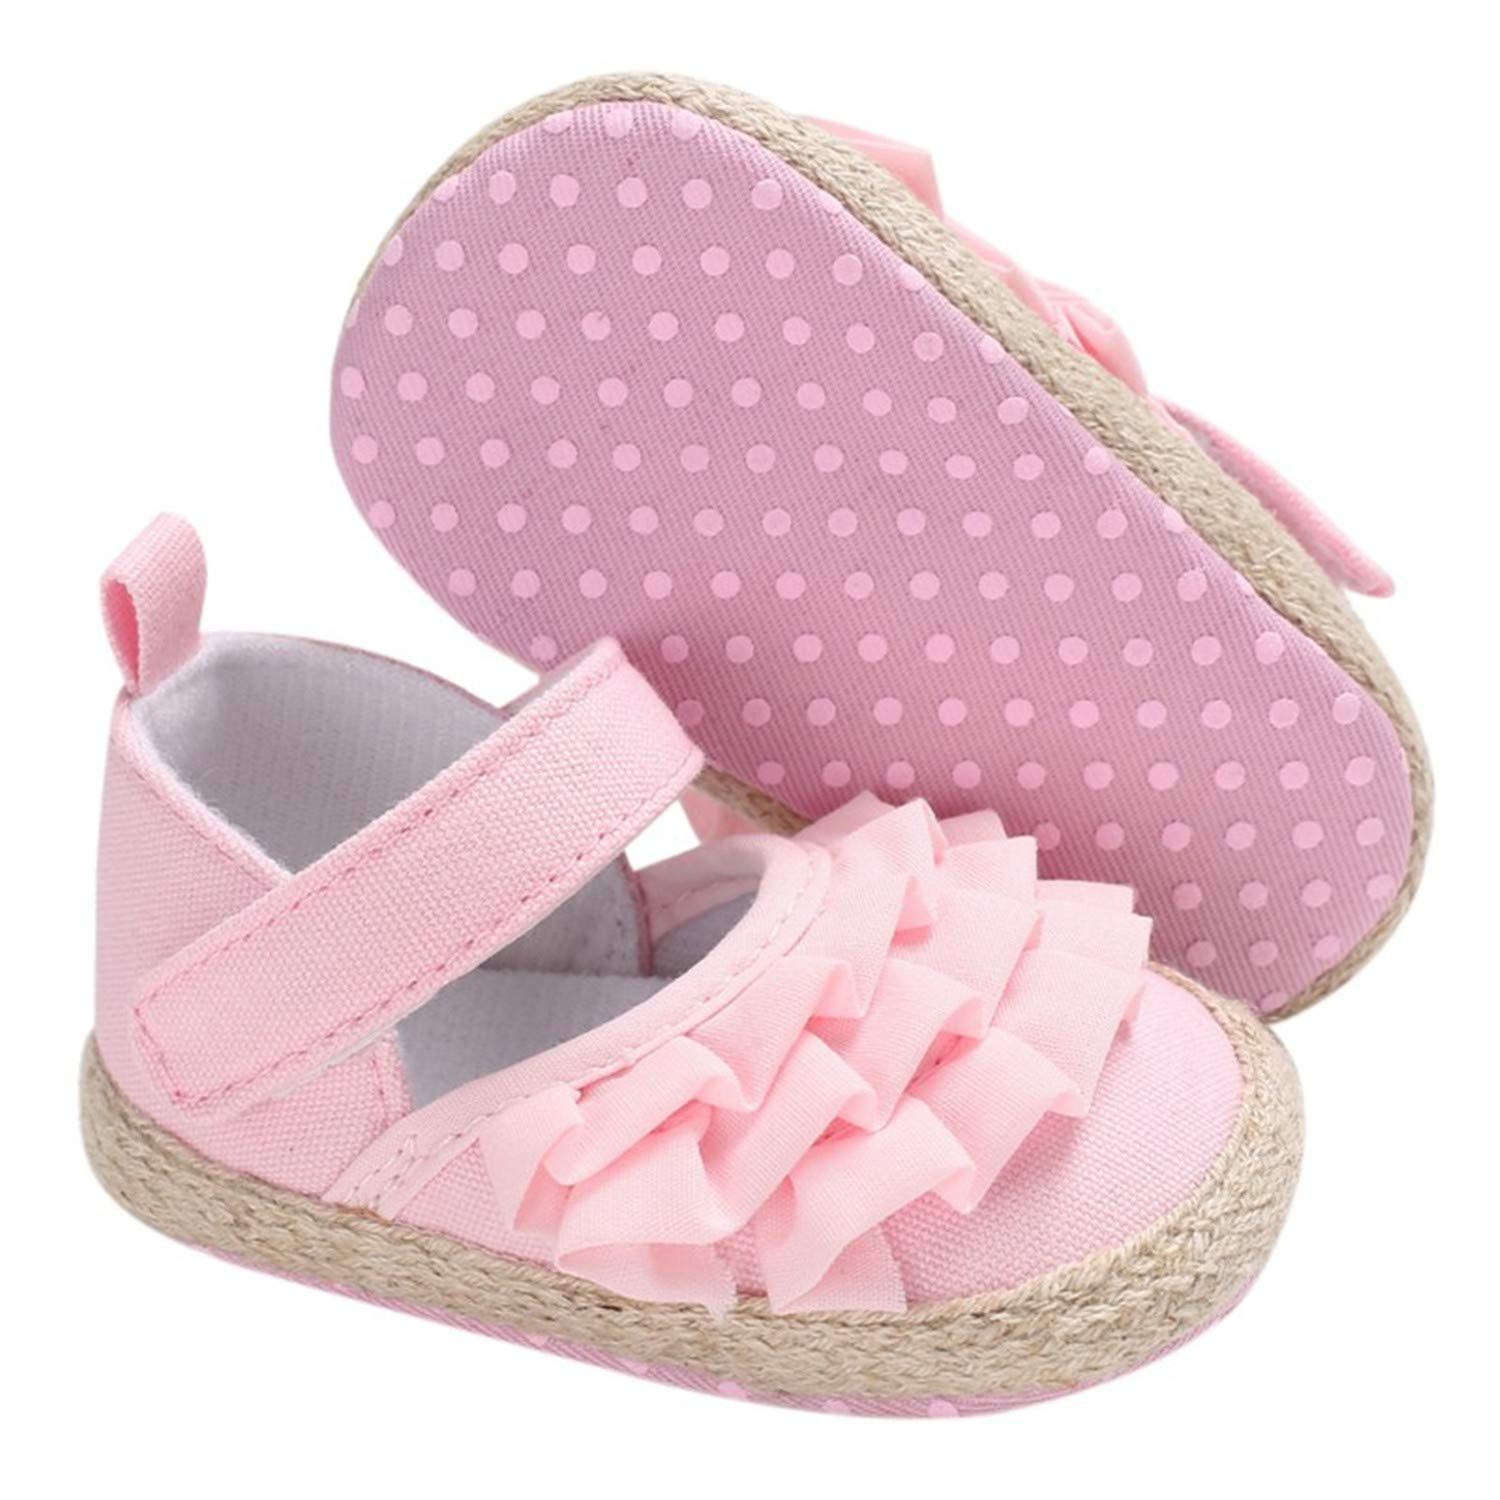 Fralina Newborn Baby Shoes Autumn//Spring Lace Baby Girls Shoes First Walkers Soft Bottom Girl Shoes